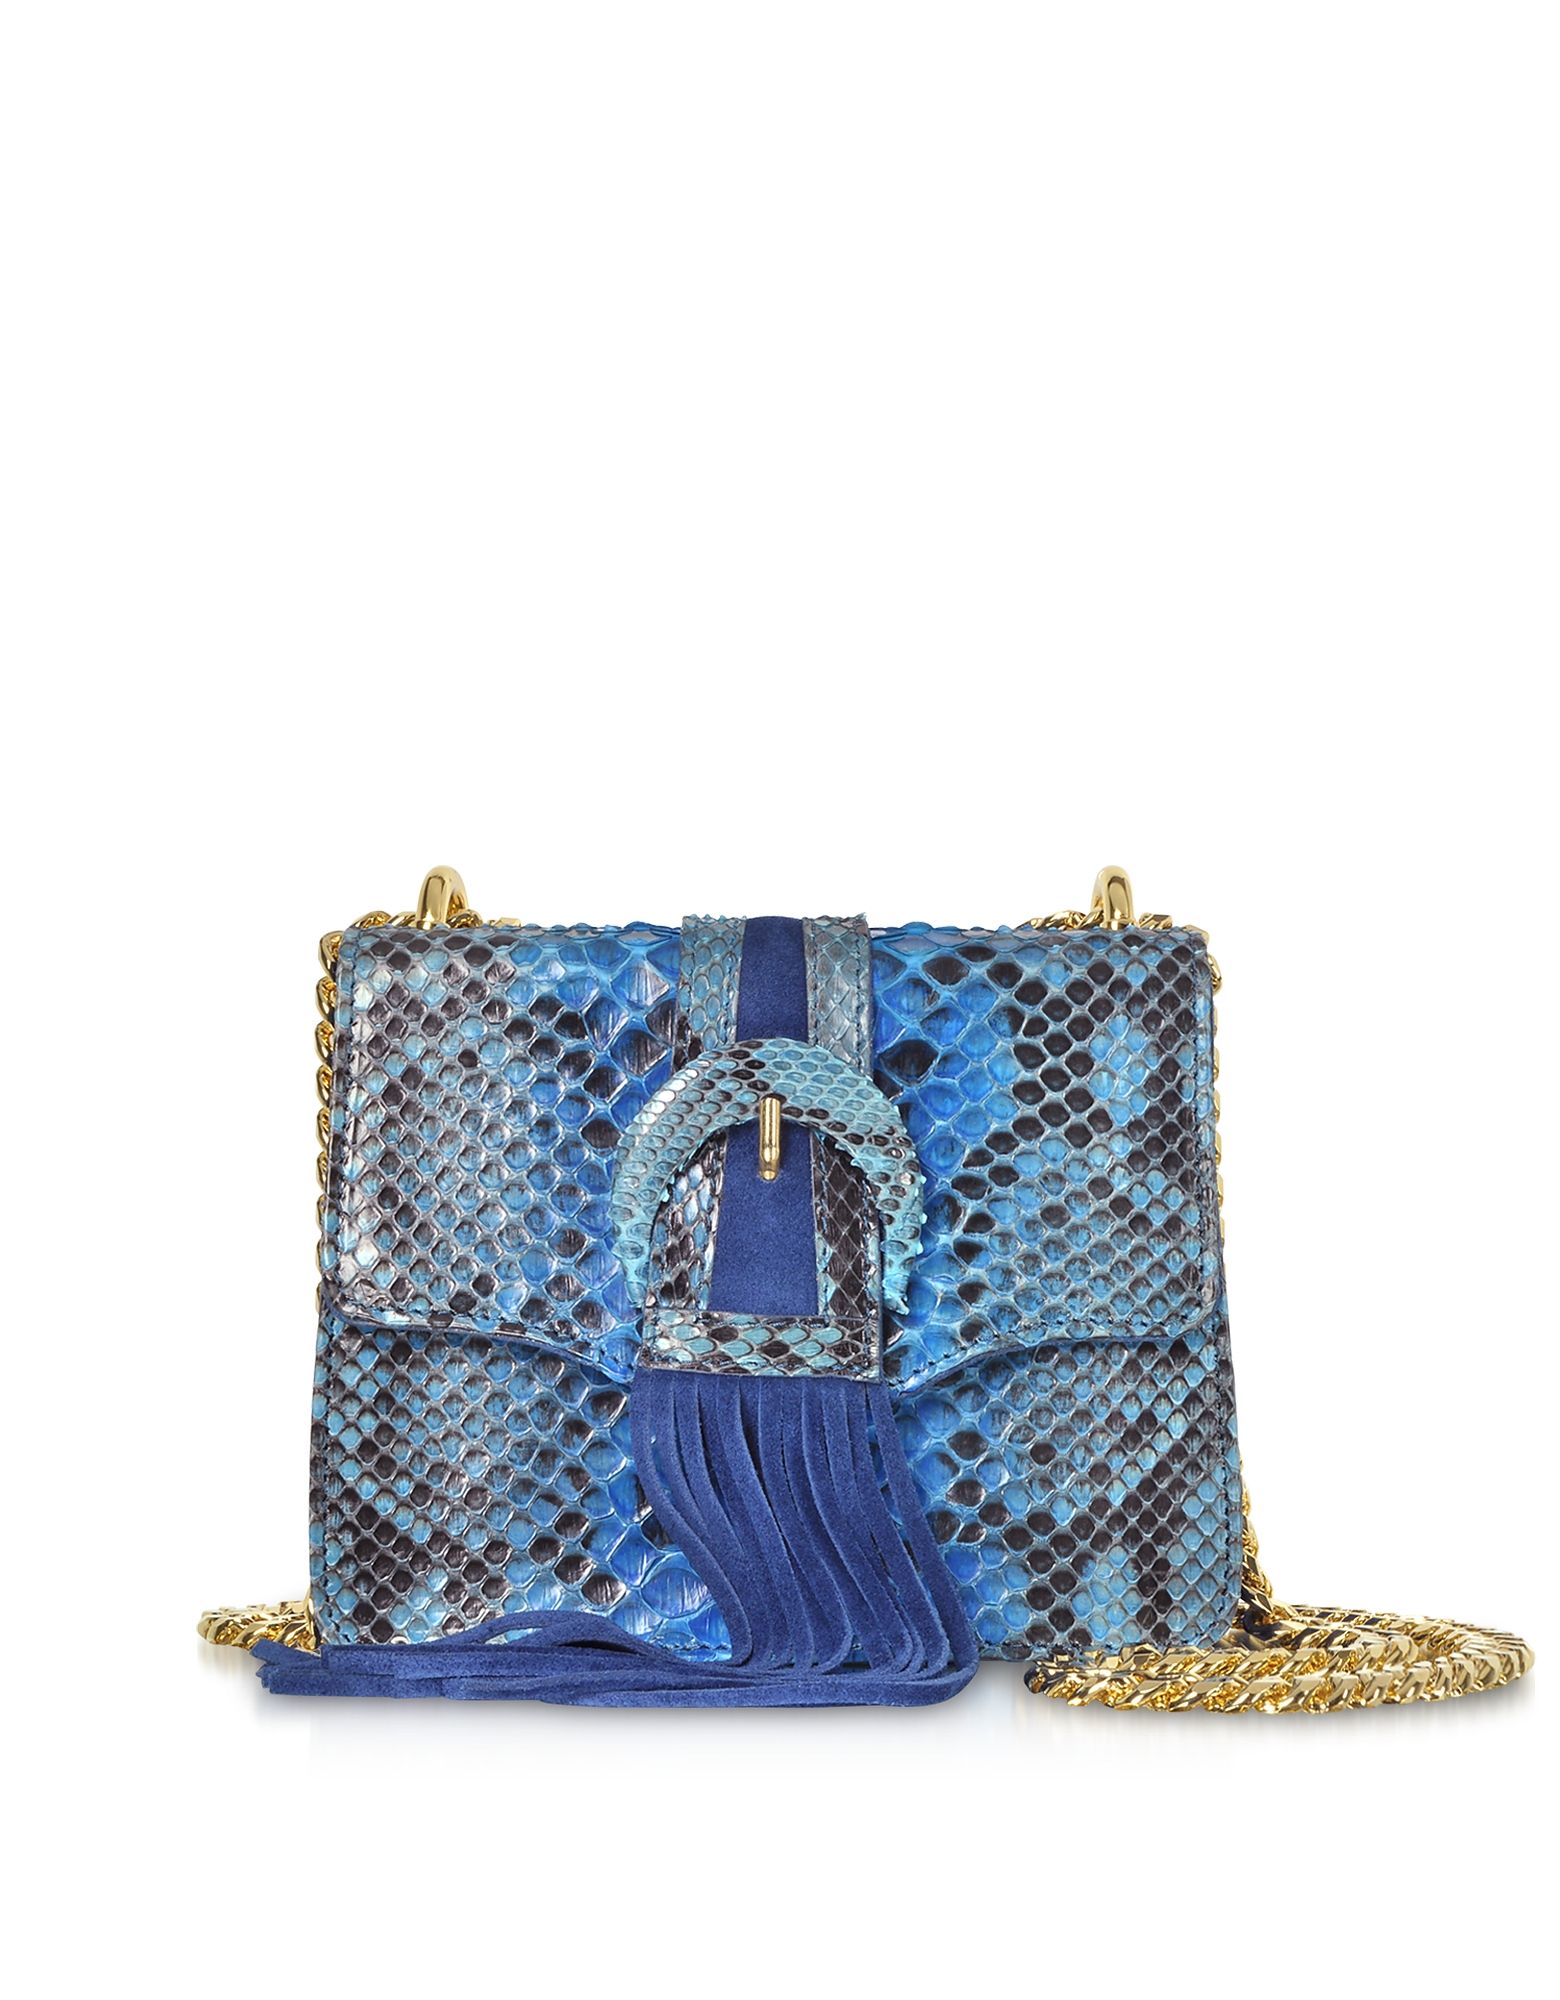 Deep Blue Python leather Small Shoulder Bag w/Buckle